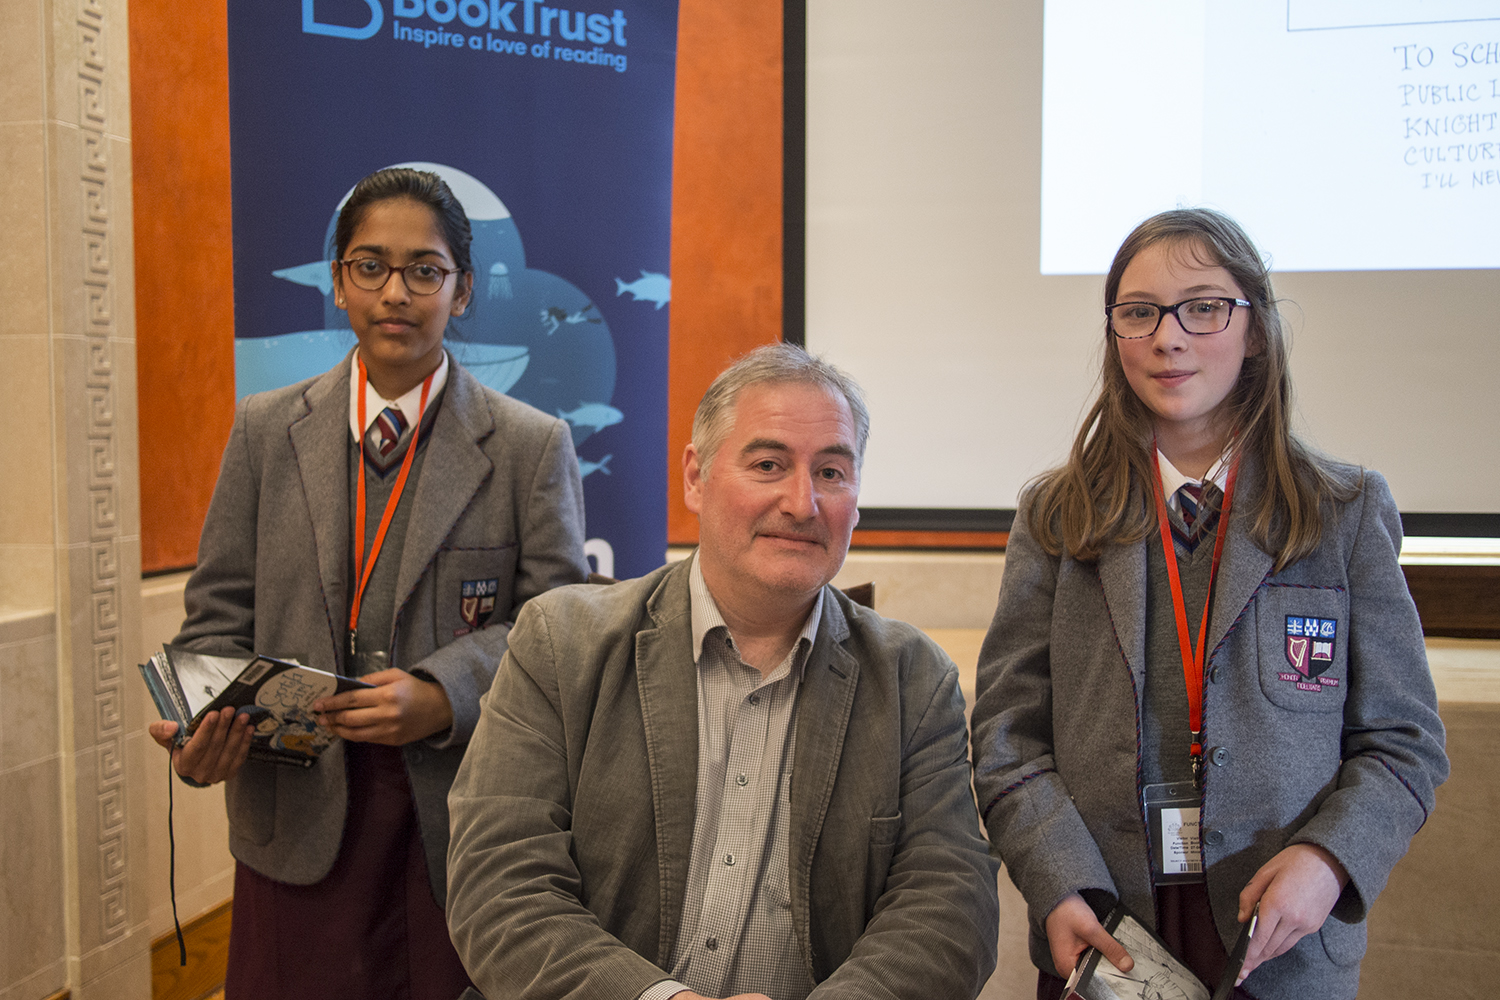 A1270697 Maeve and Vaidhai with Chris Riddell.jpg